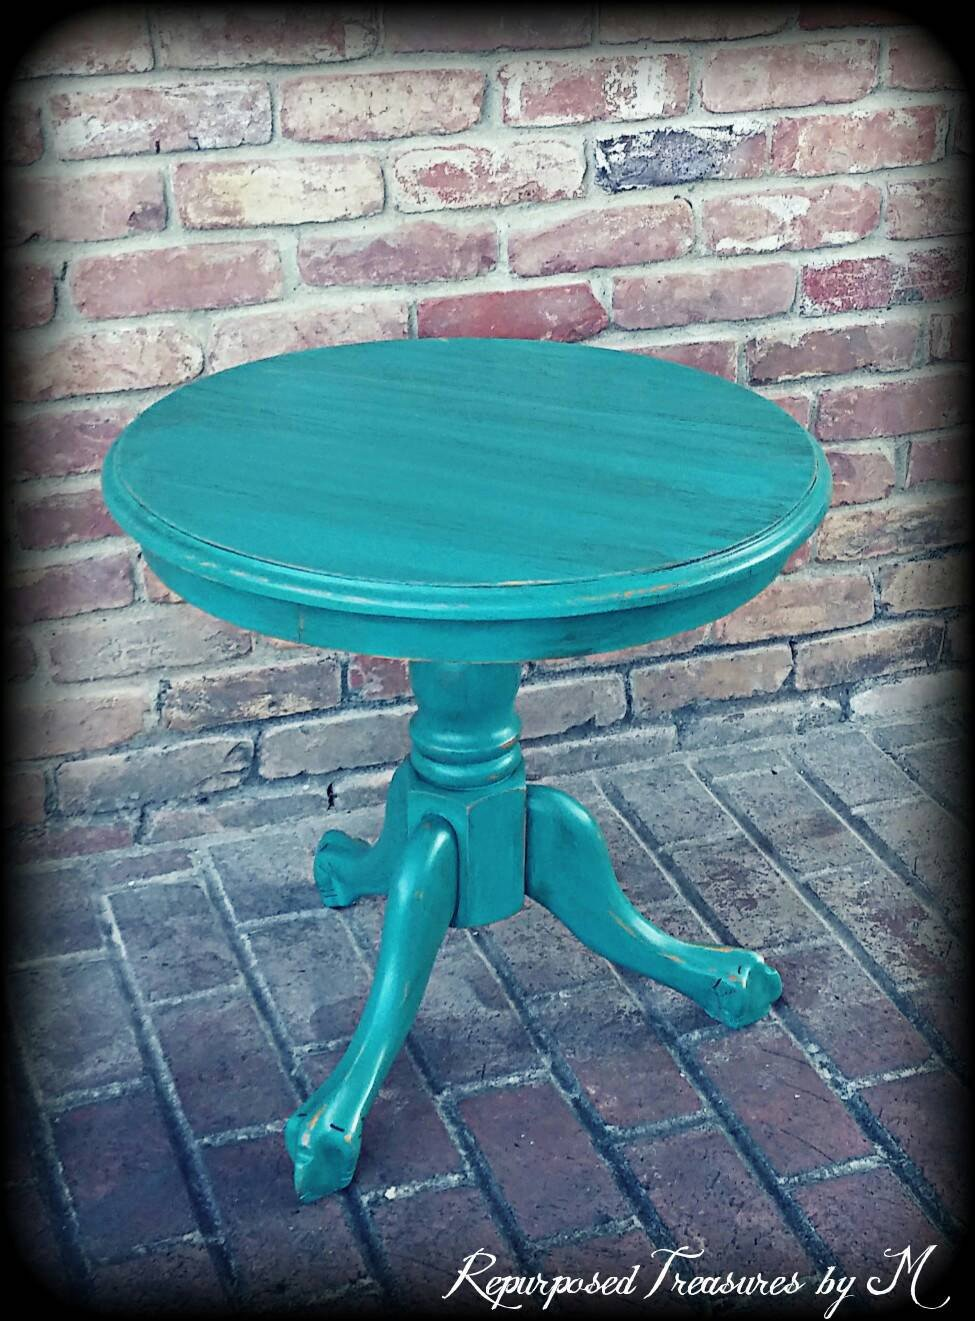 sold vintage accent table turquoise shabby chic etsy fullxfull fvrw distressed blue mirrored dresser target west elm mobile chandelier brown wicker end pretty storage boxes ikea